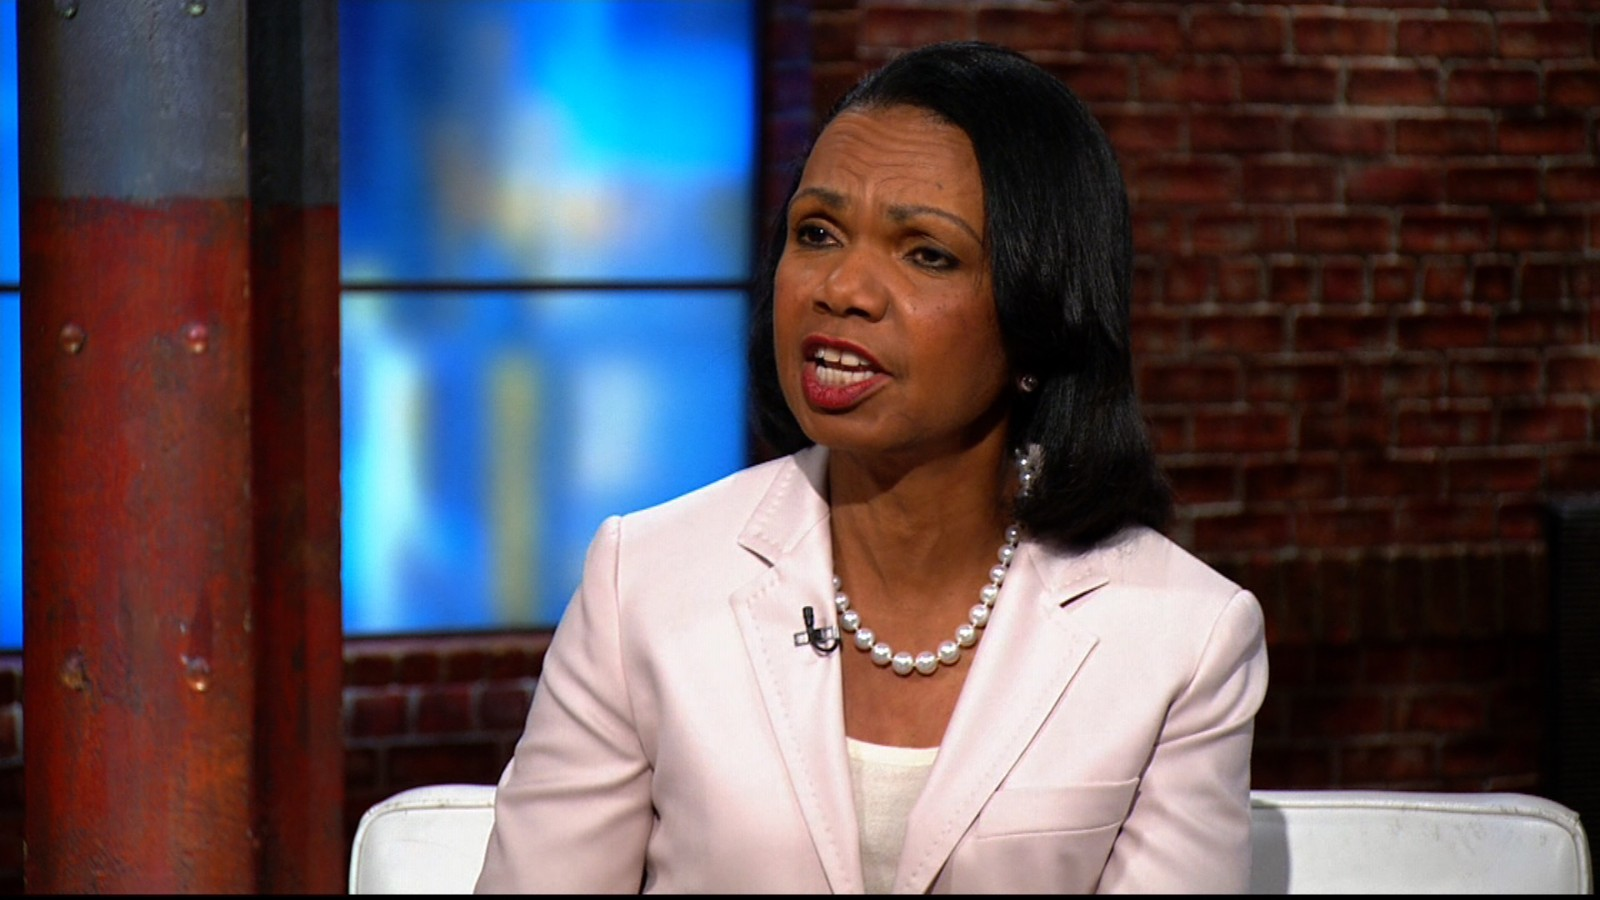 condoleezza rice says us will weather political storm over comey